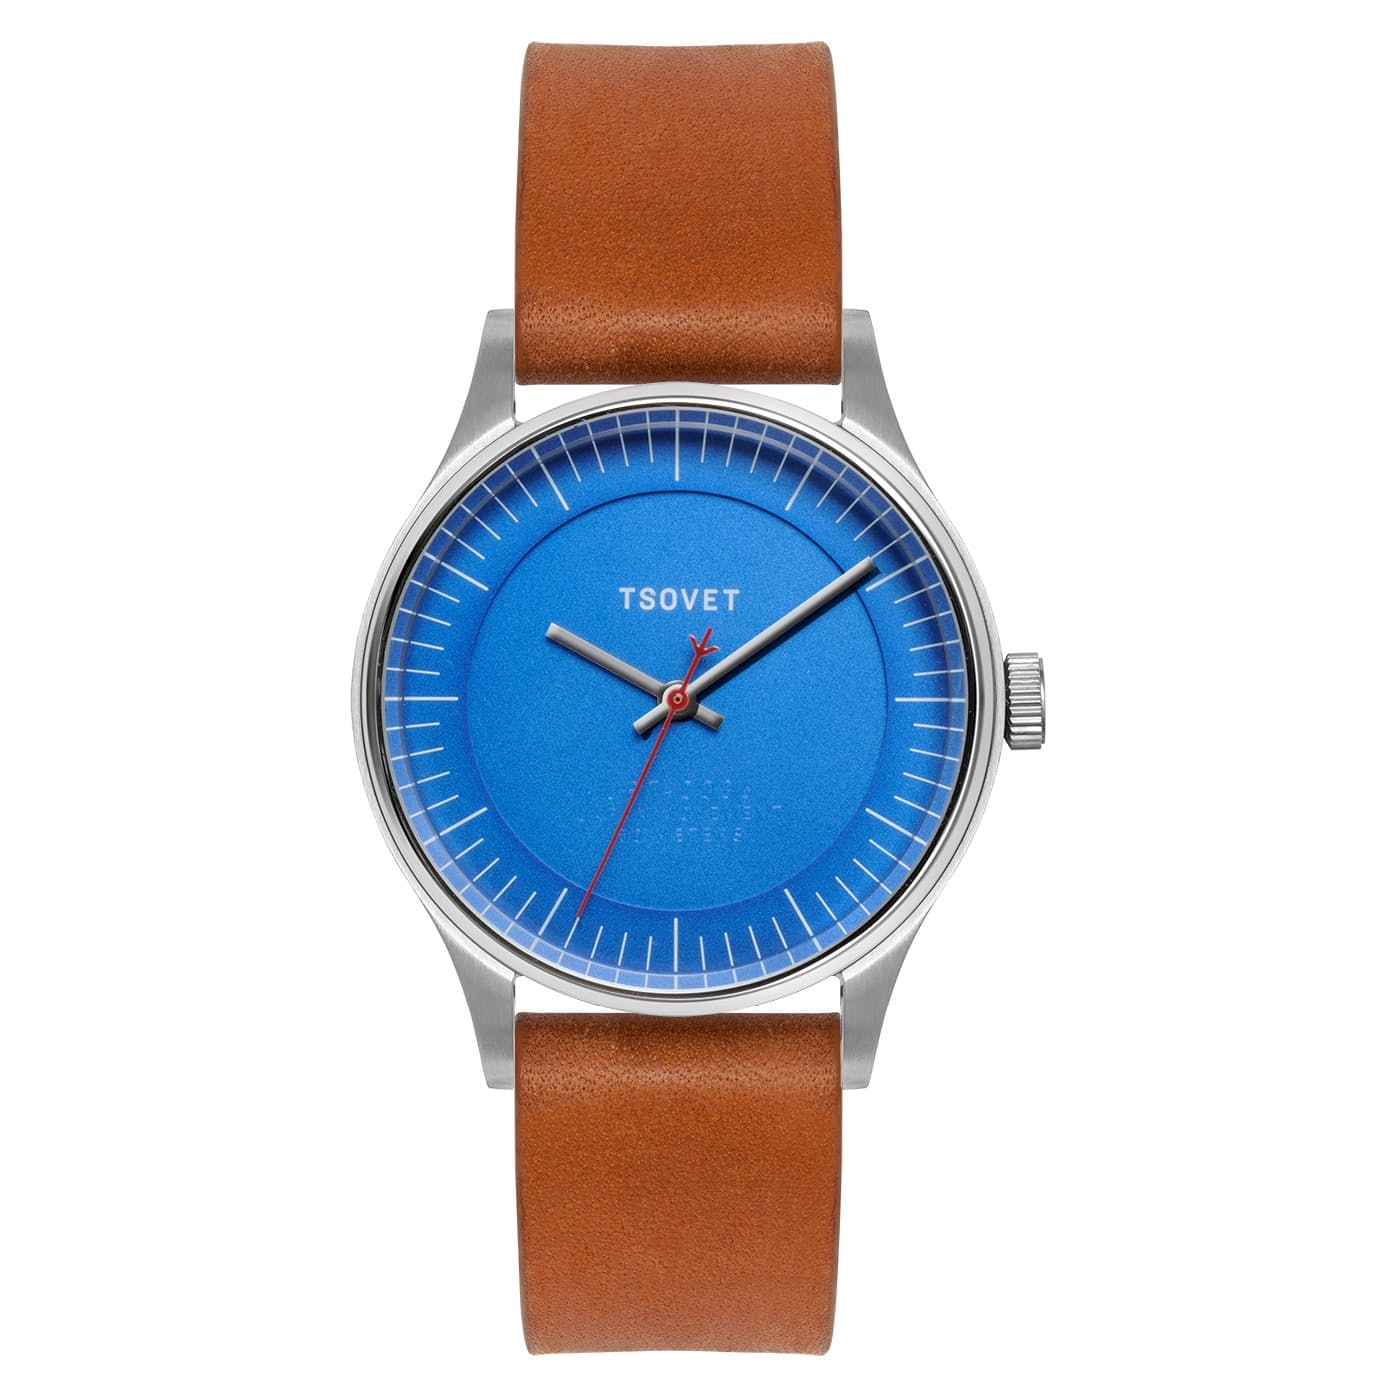 9trlc9pf1v tsovet jpt co 36 0 original